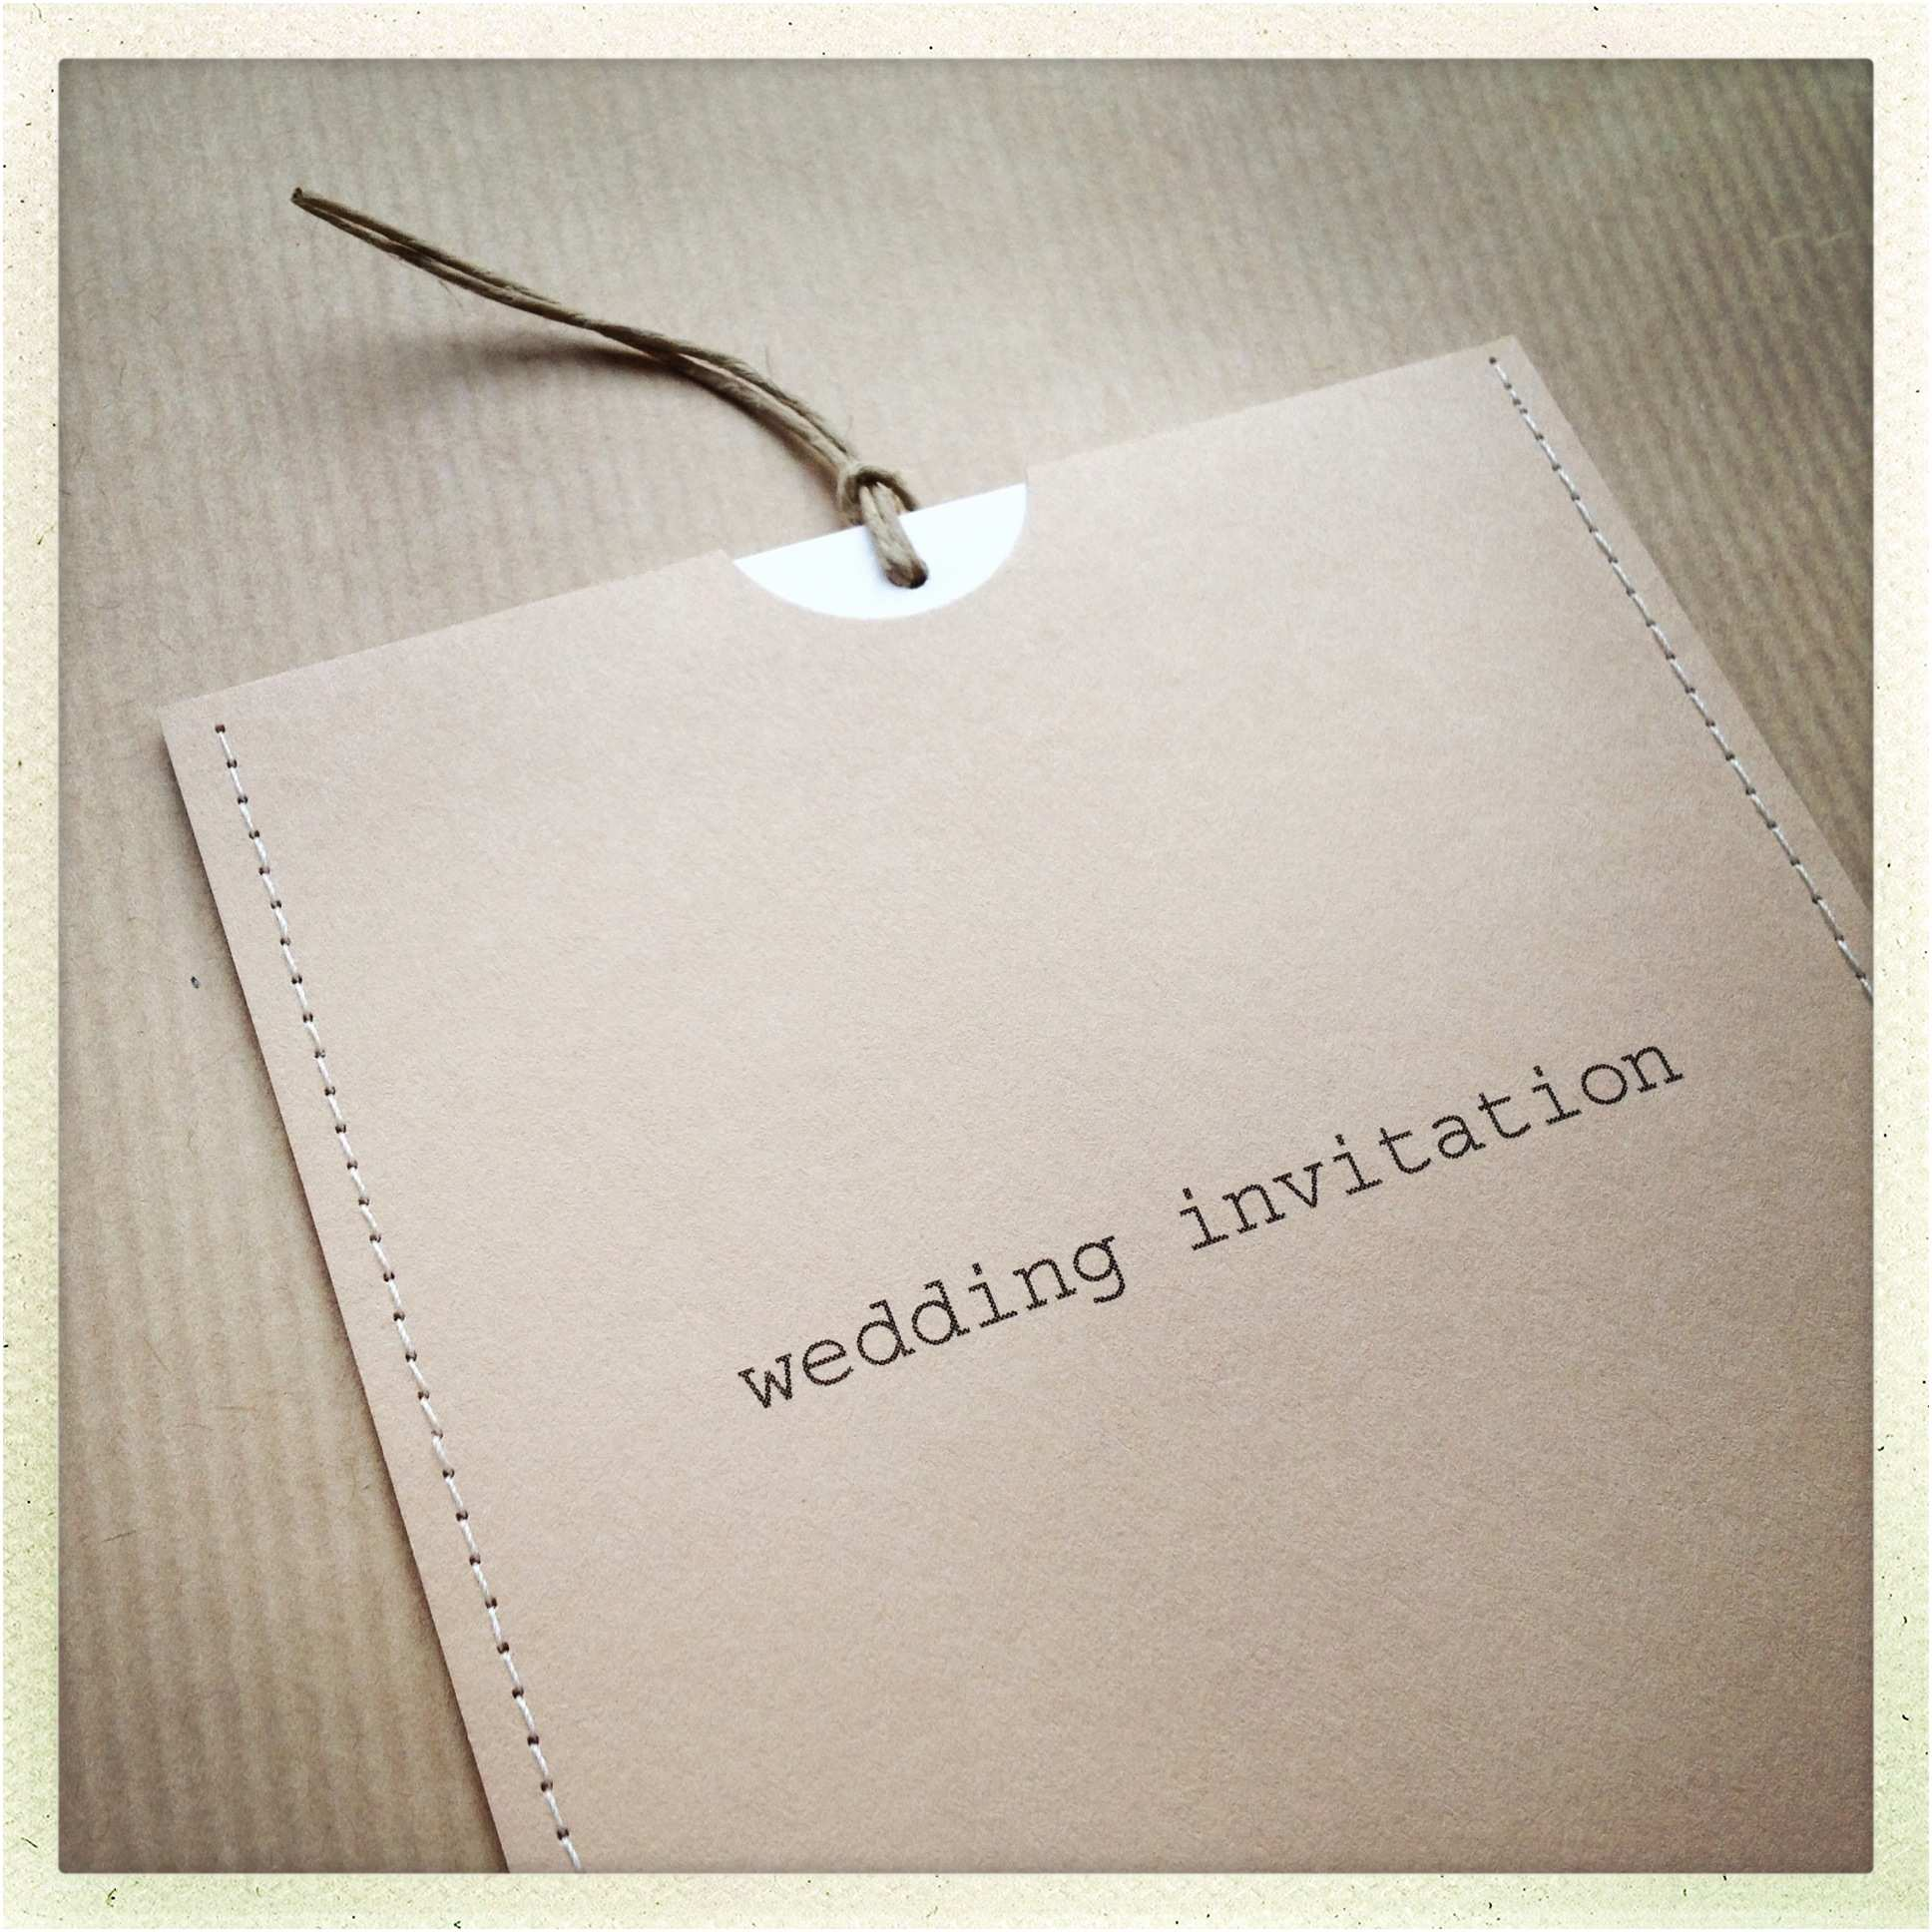 Homemade Wedding Invitations.Handmade Wedding Invitations Homemade Wedding Invitations